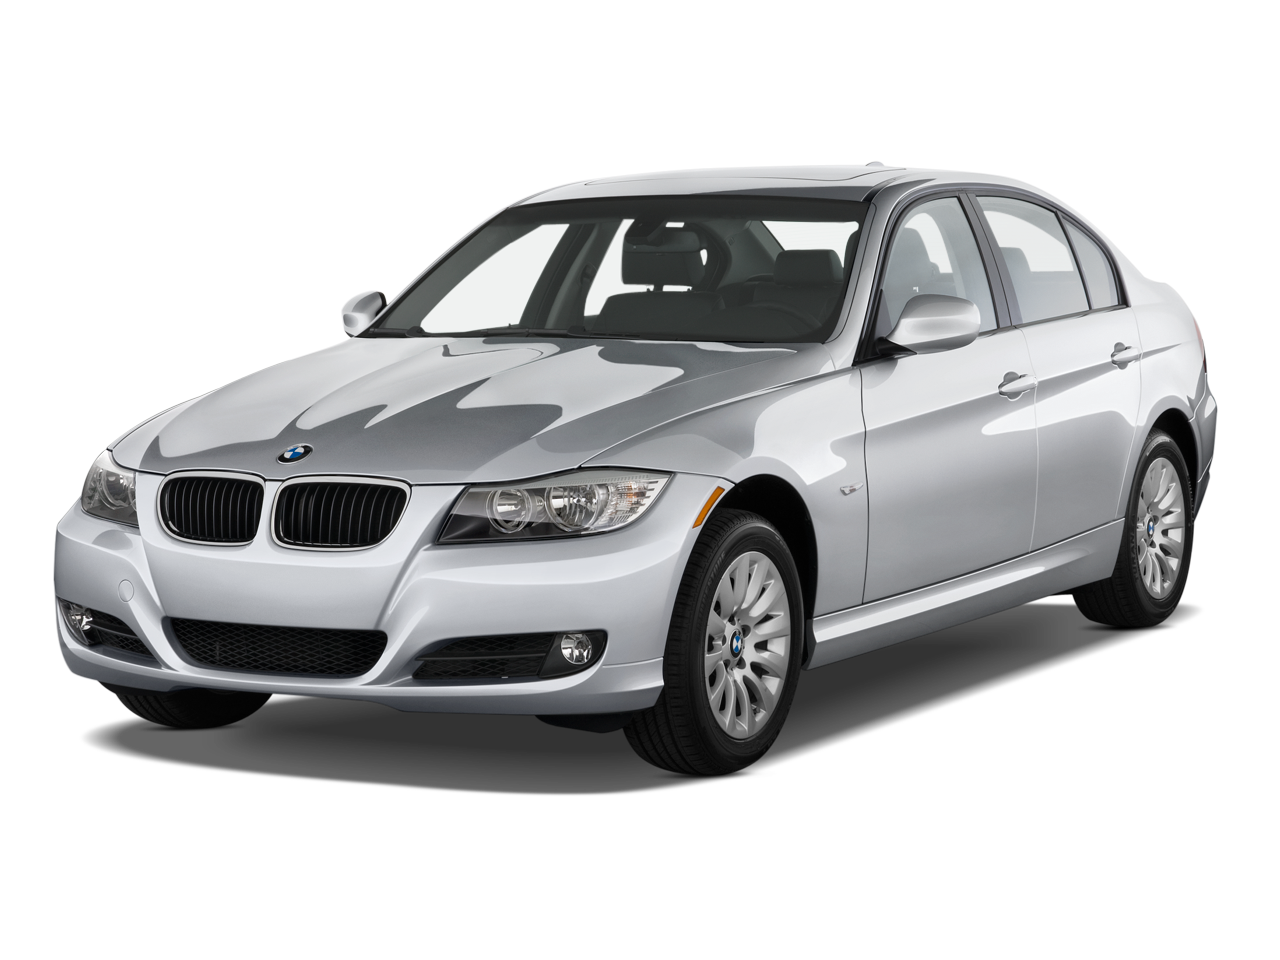 Car Png Picture Png Image - Car, Transparent background PNG HD thumbnail